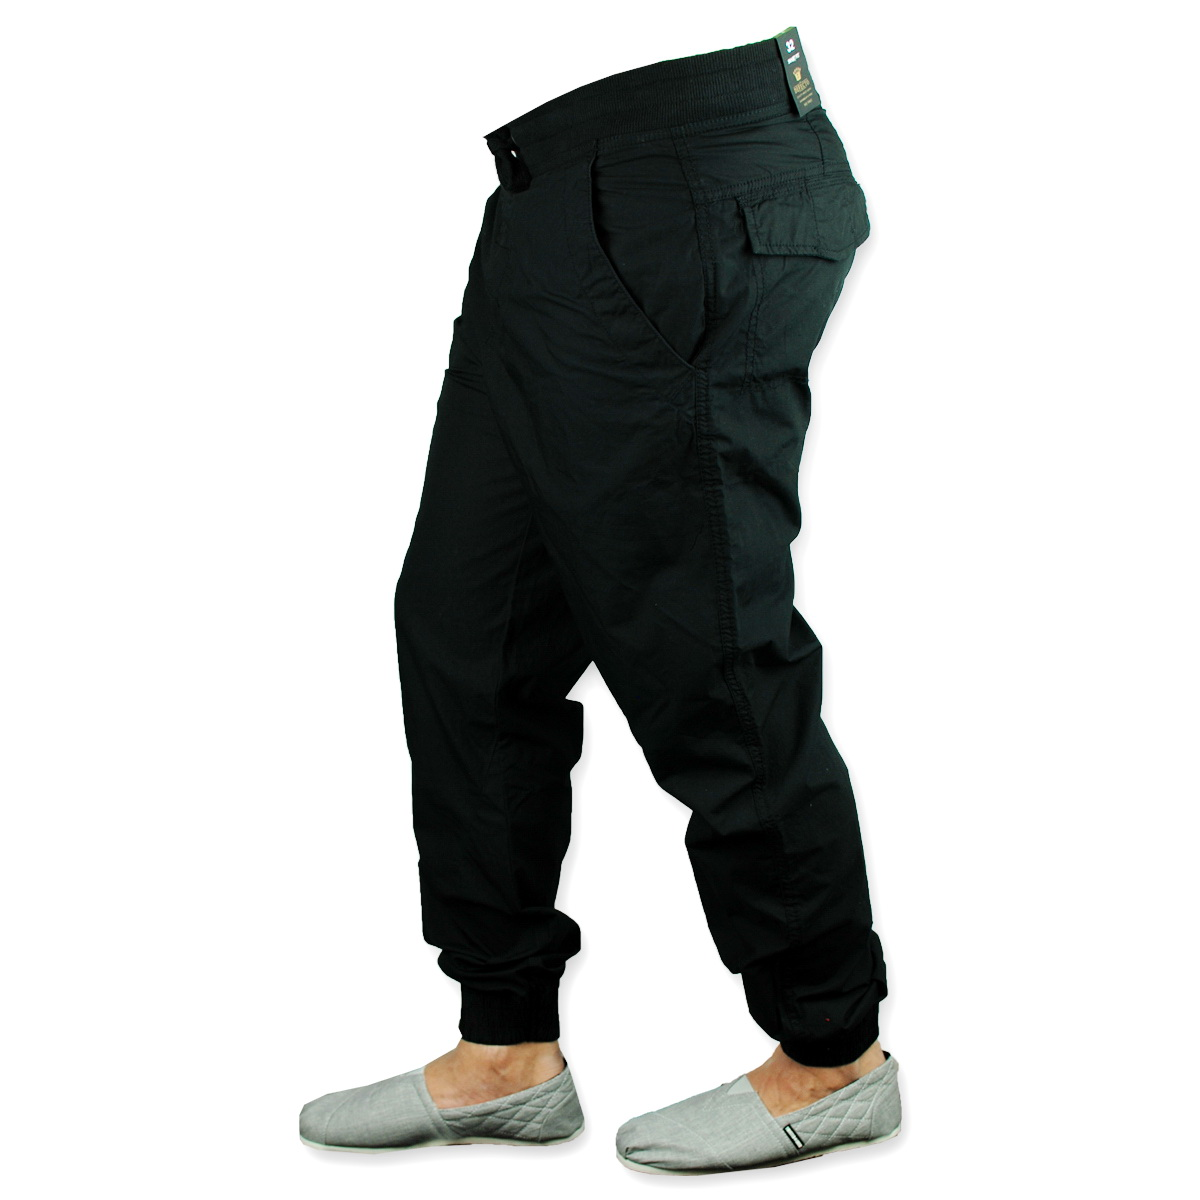 The Nike AW77 French Terry Shoebox Cuffed Men's Pants are made with super-soft yet tough french terry fabric for a warm cozy feel. They come in a slim fit for a close, comfortable feel.